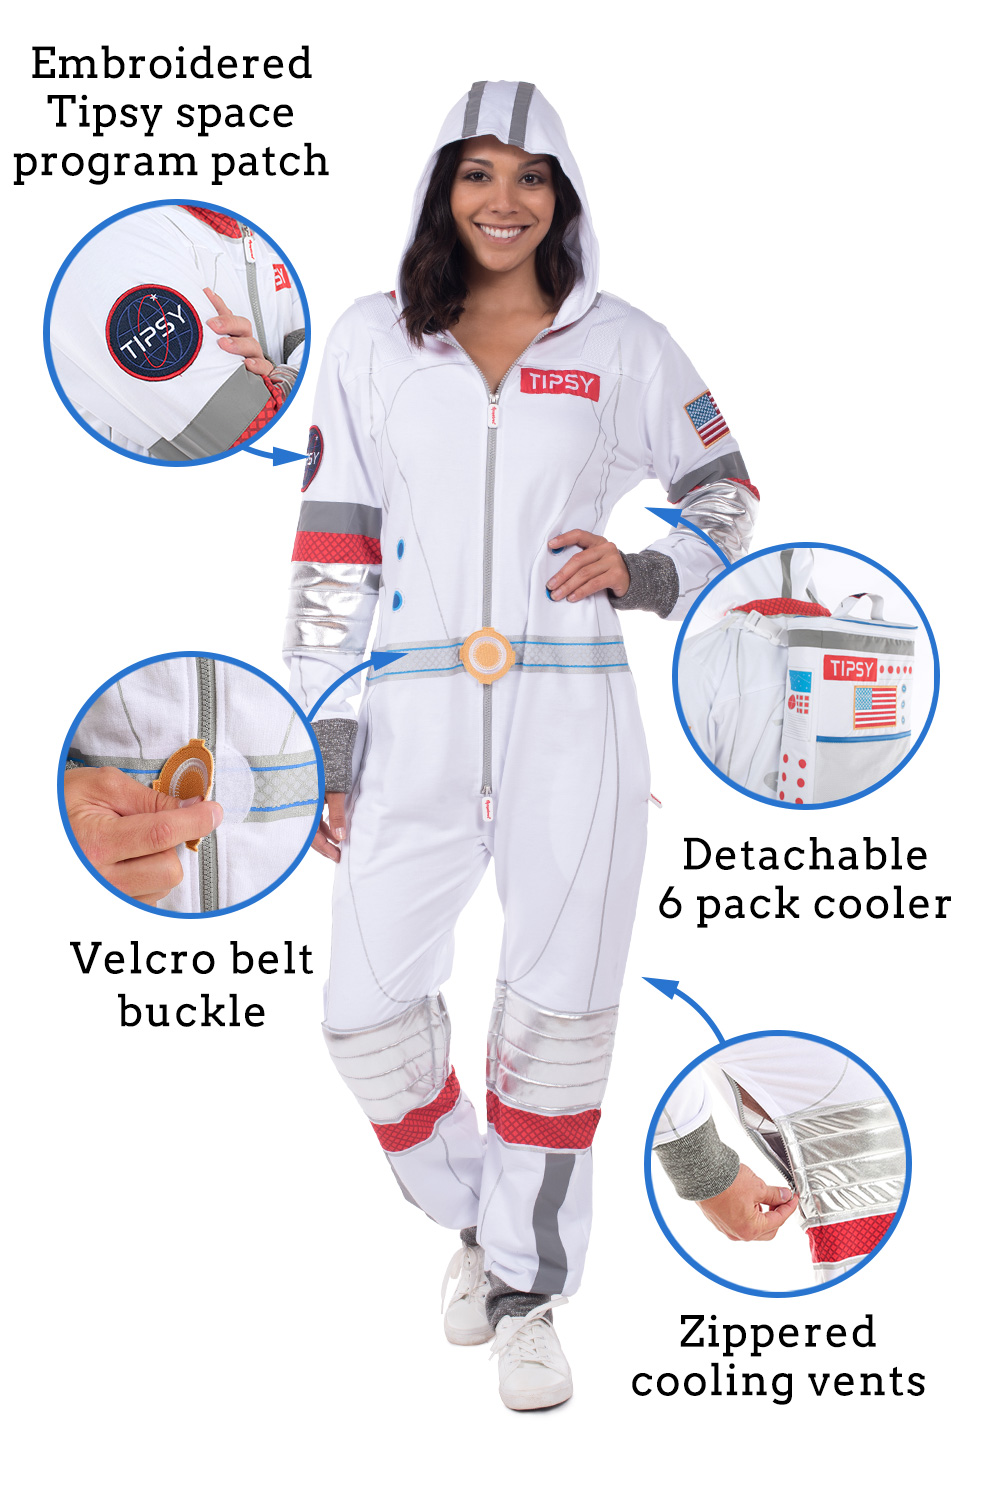 WomensAstronaut_WebsiteImage.jpg